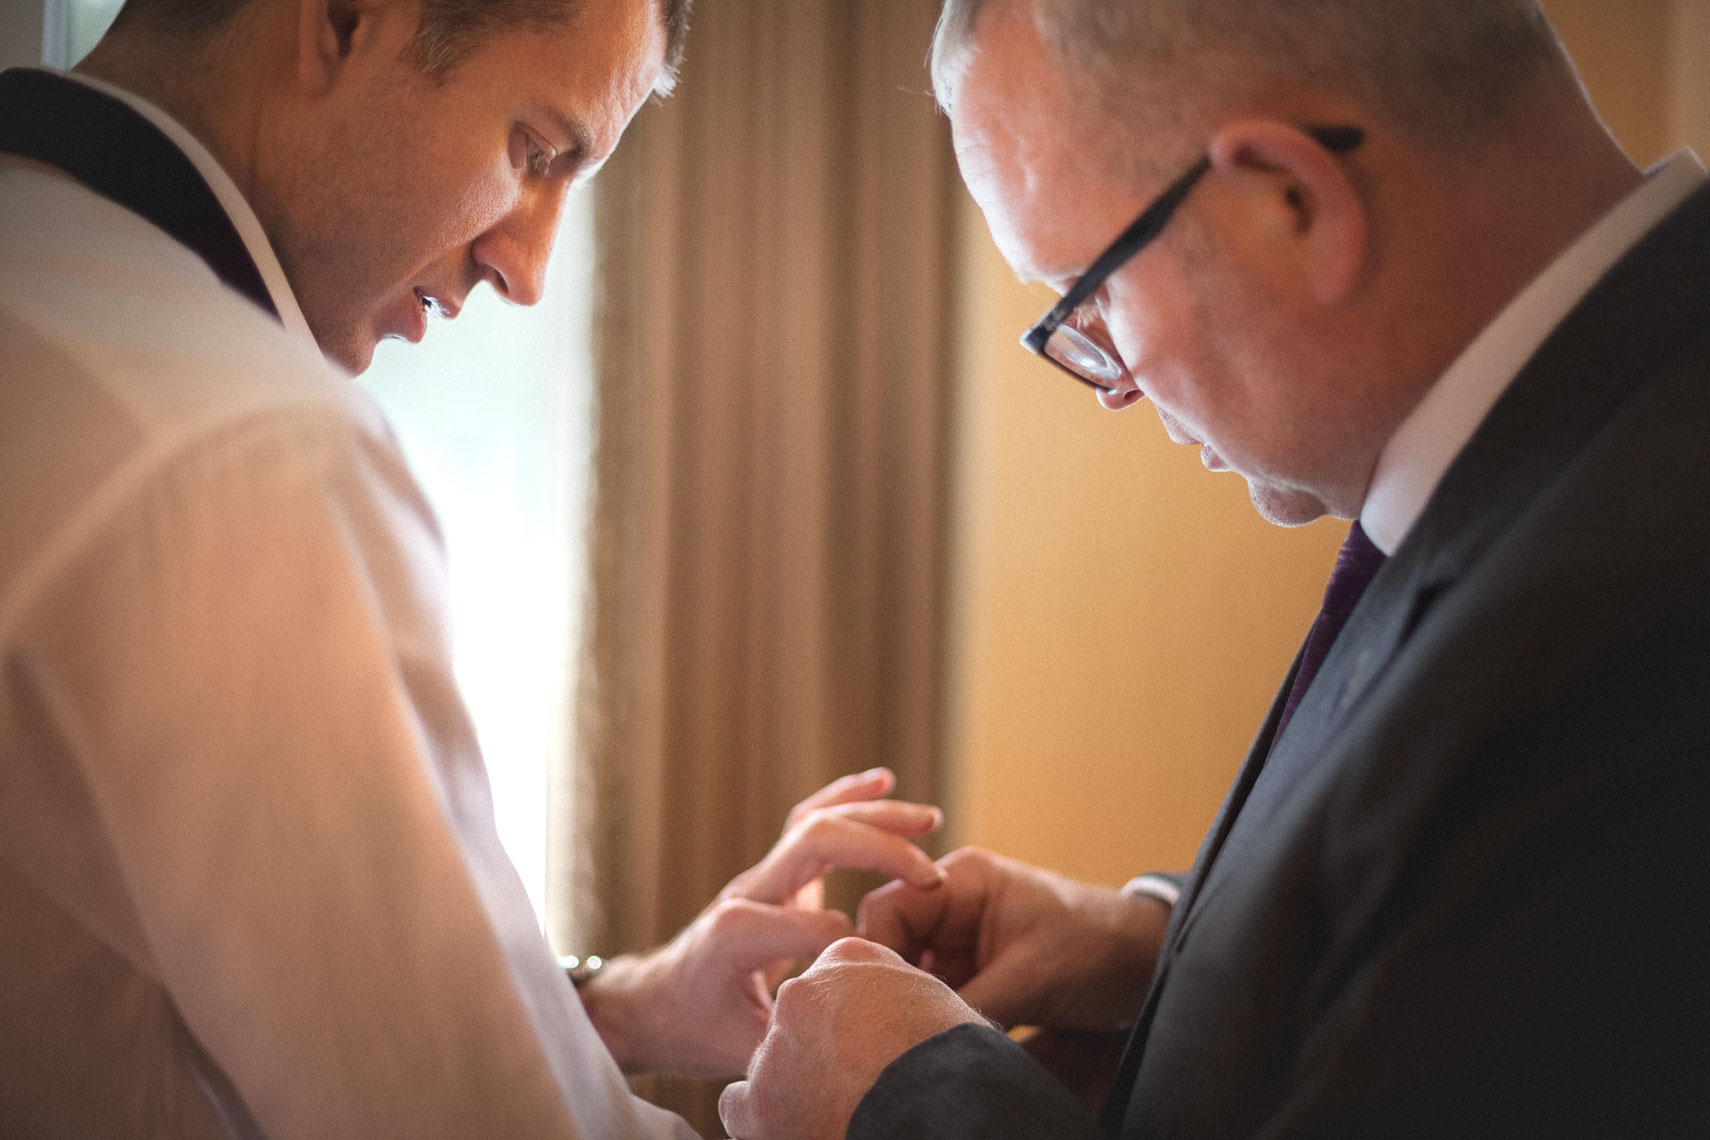 Groomsman helps groom with cufflinks before wedding ceremony in Whistler, BC